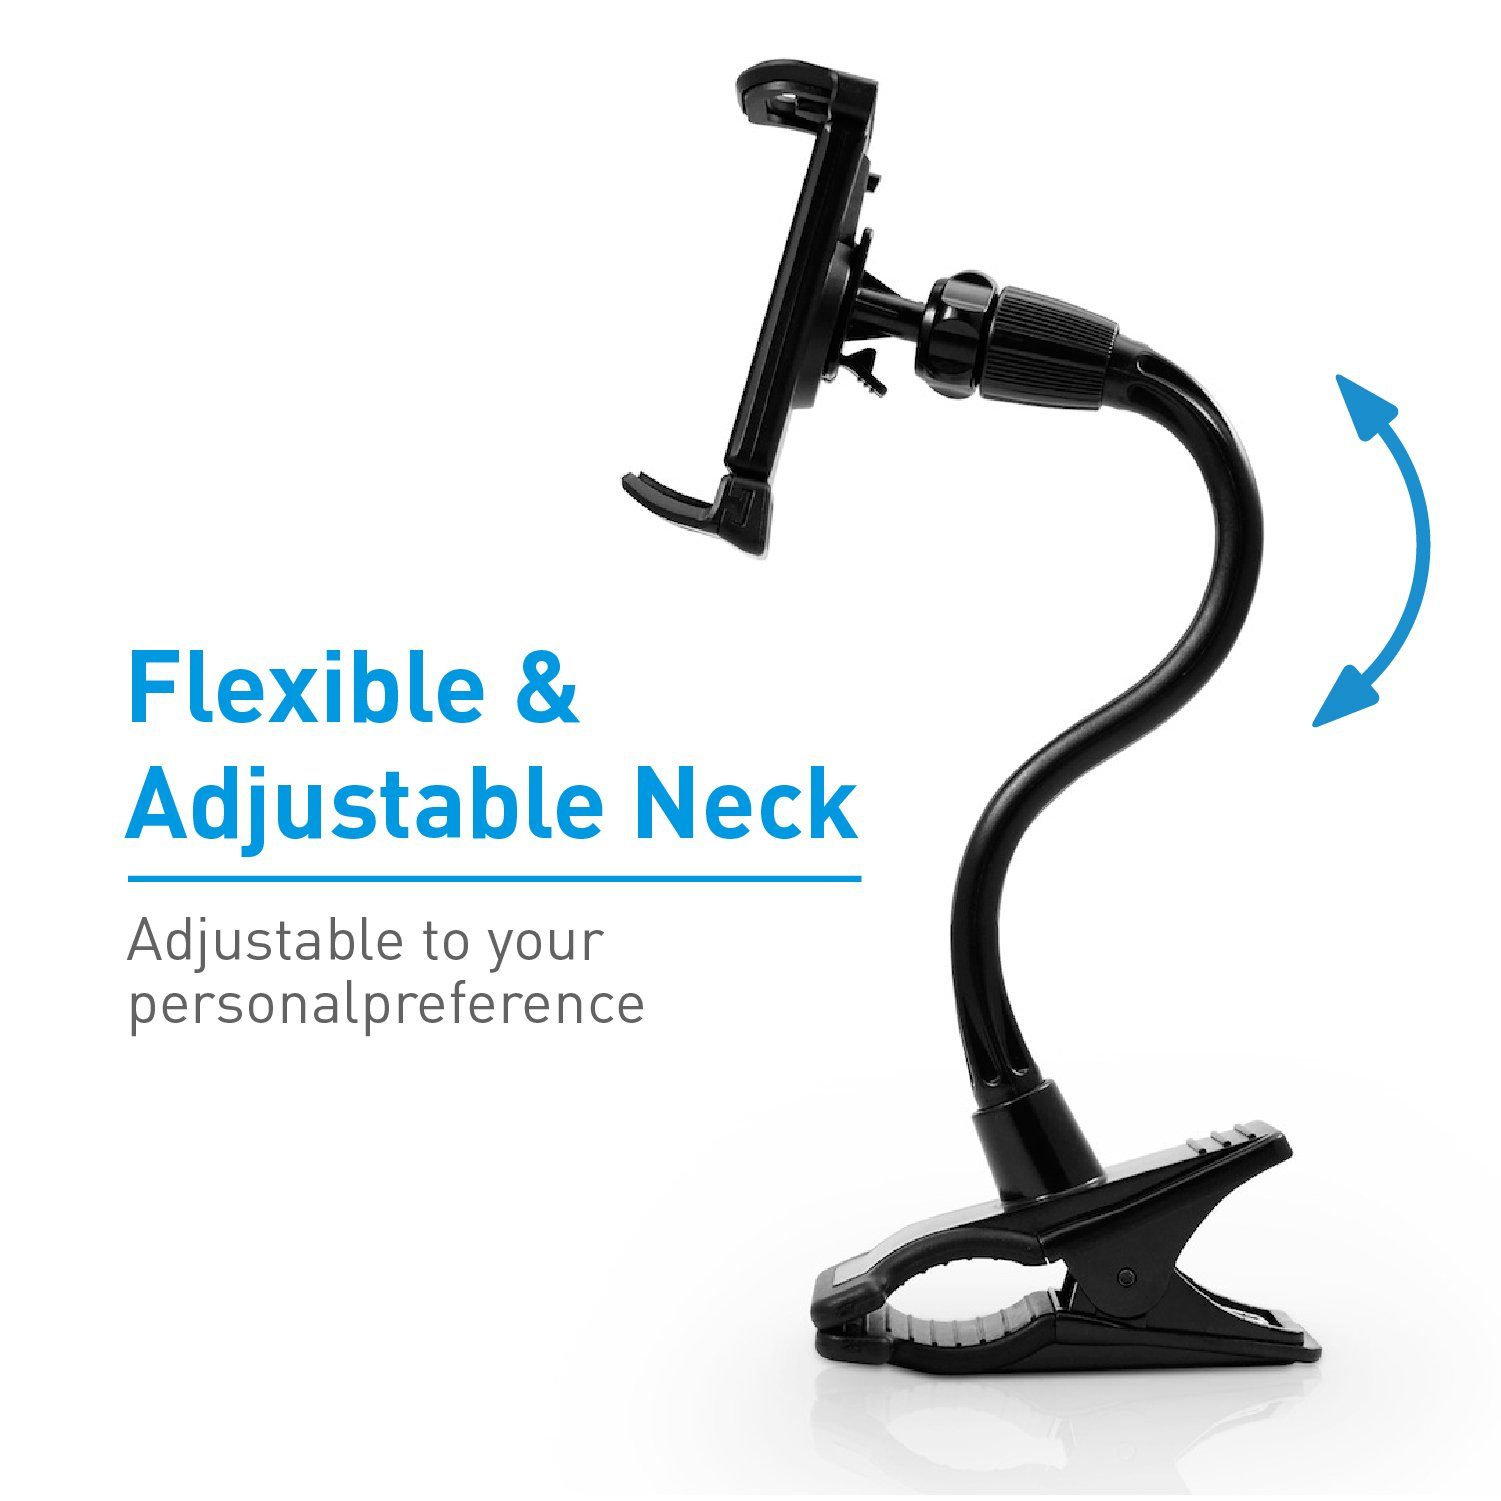 Macally Flexible and Adjustable Gooseneck Clip On Desk or Kitchen Table Holder Clamp Mount for iPad Air / Mini, Tablets, iPhone XS XS Max XR X 8 Plus, Moto Smartphones, & Nintendo Switch (ClipMount) by Macally (Image #3)